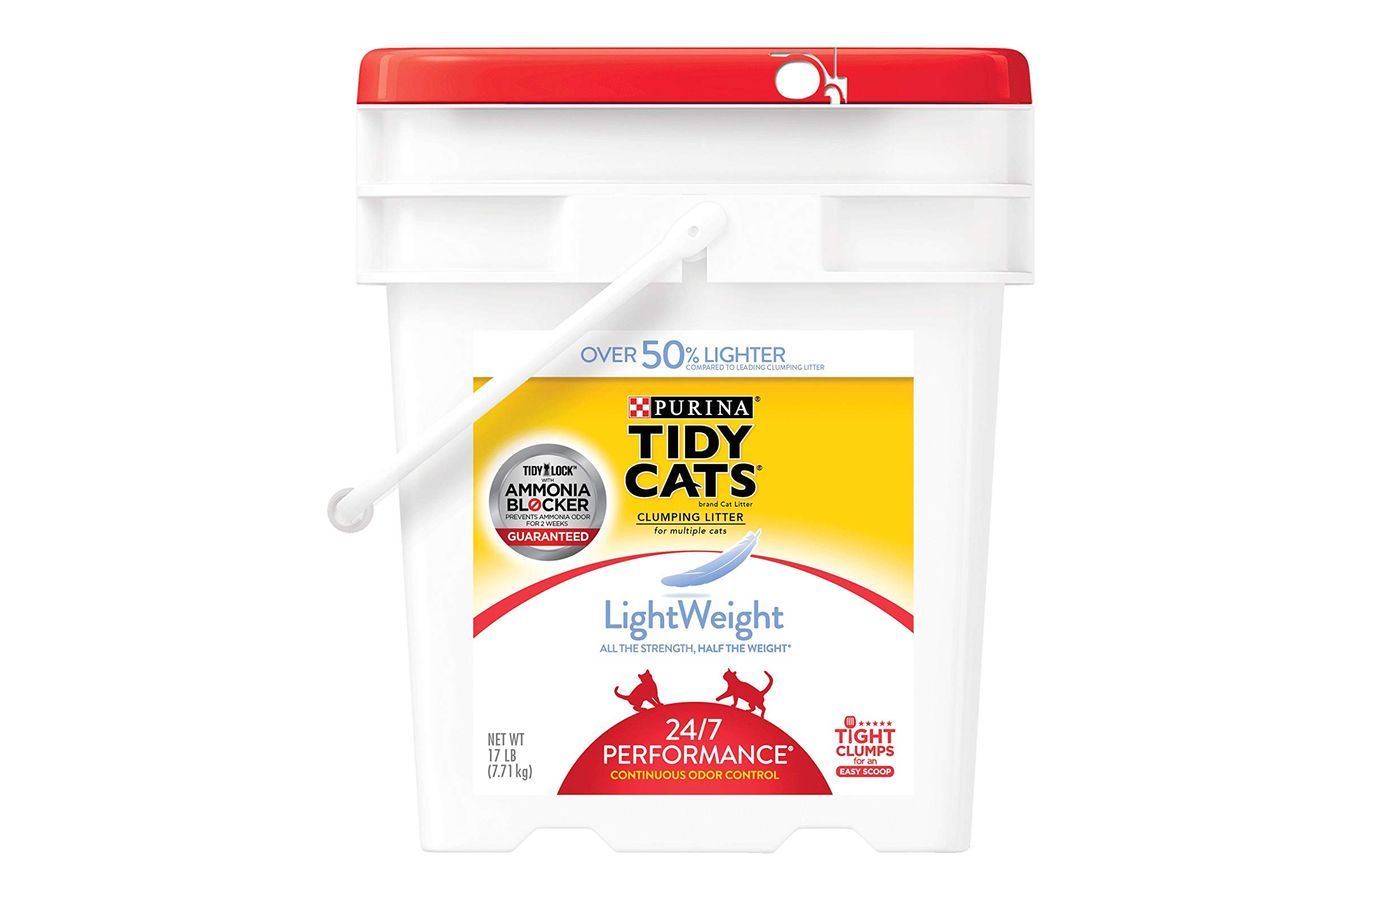 Purina Tidy Cats LightWeight 24/7 Performance Cat Litter